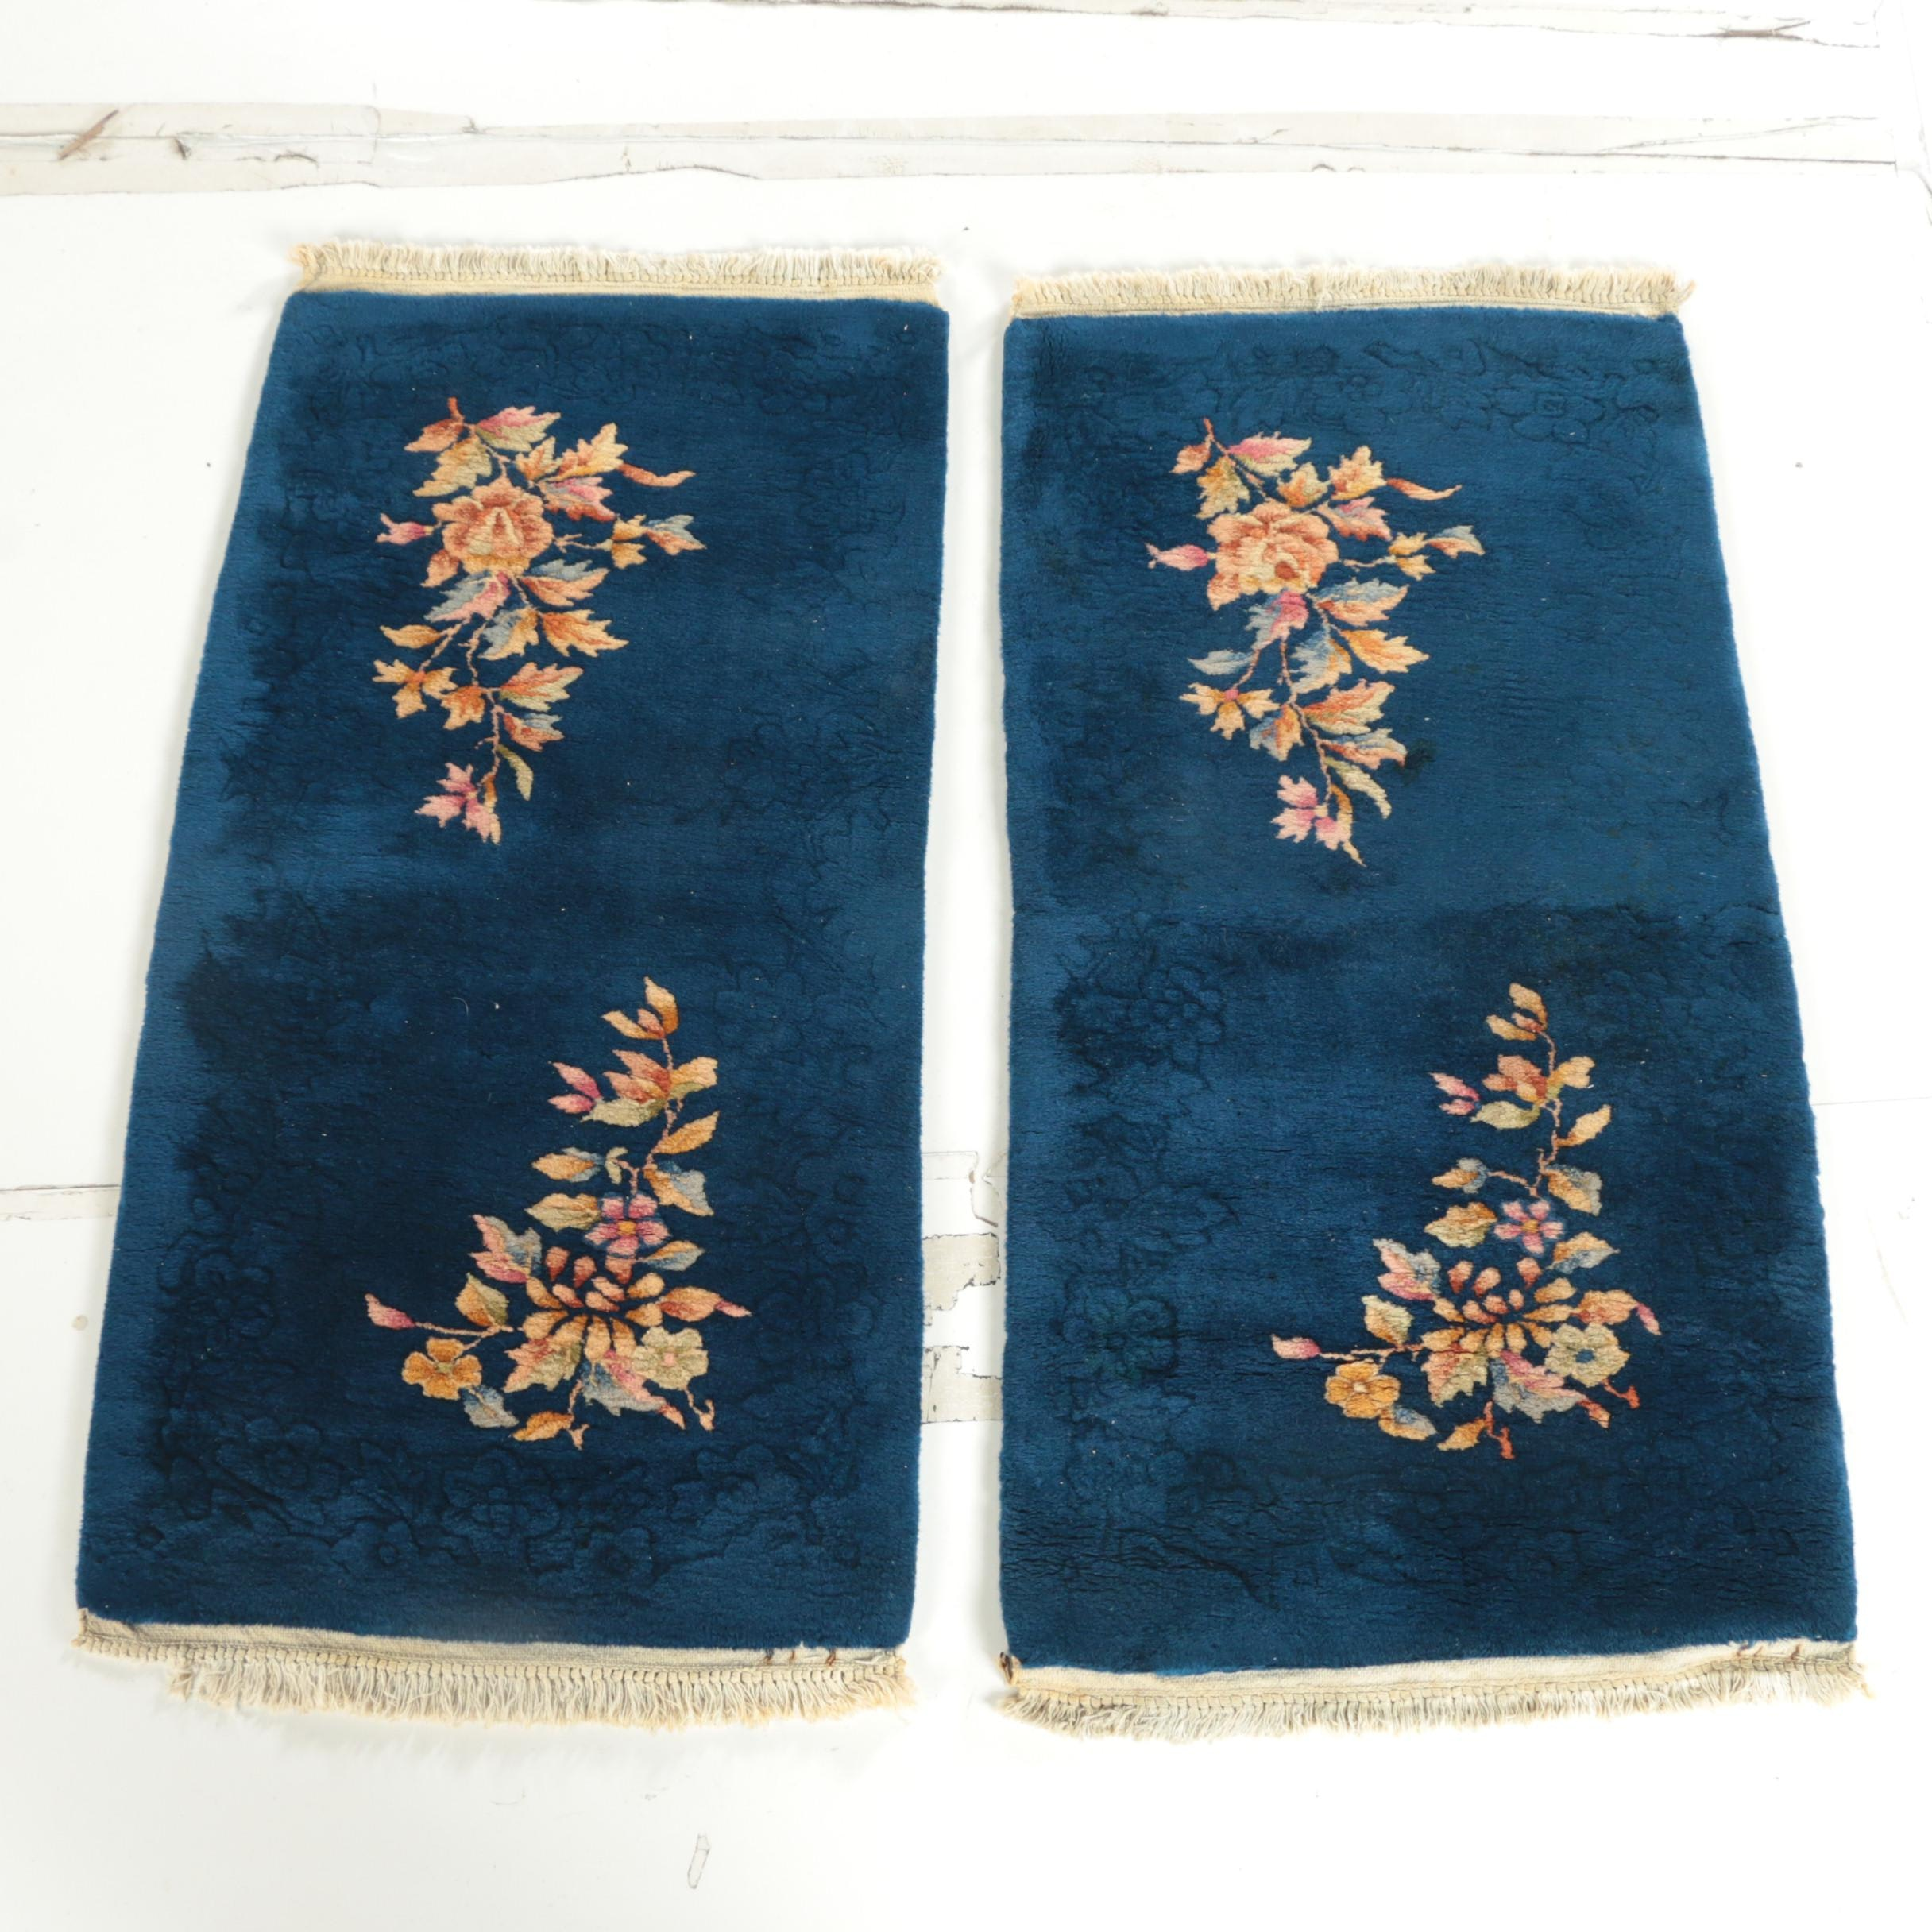 Vintage Hand-Knotted Chinese Art Deco Style Carved Wool Accent Rugs